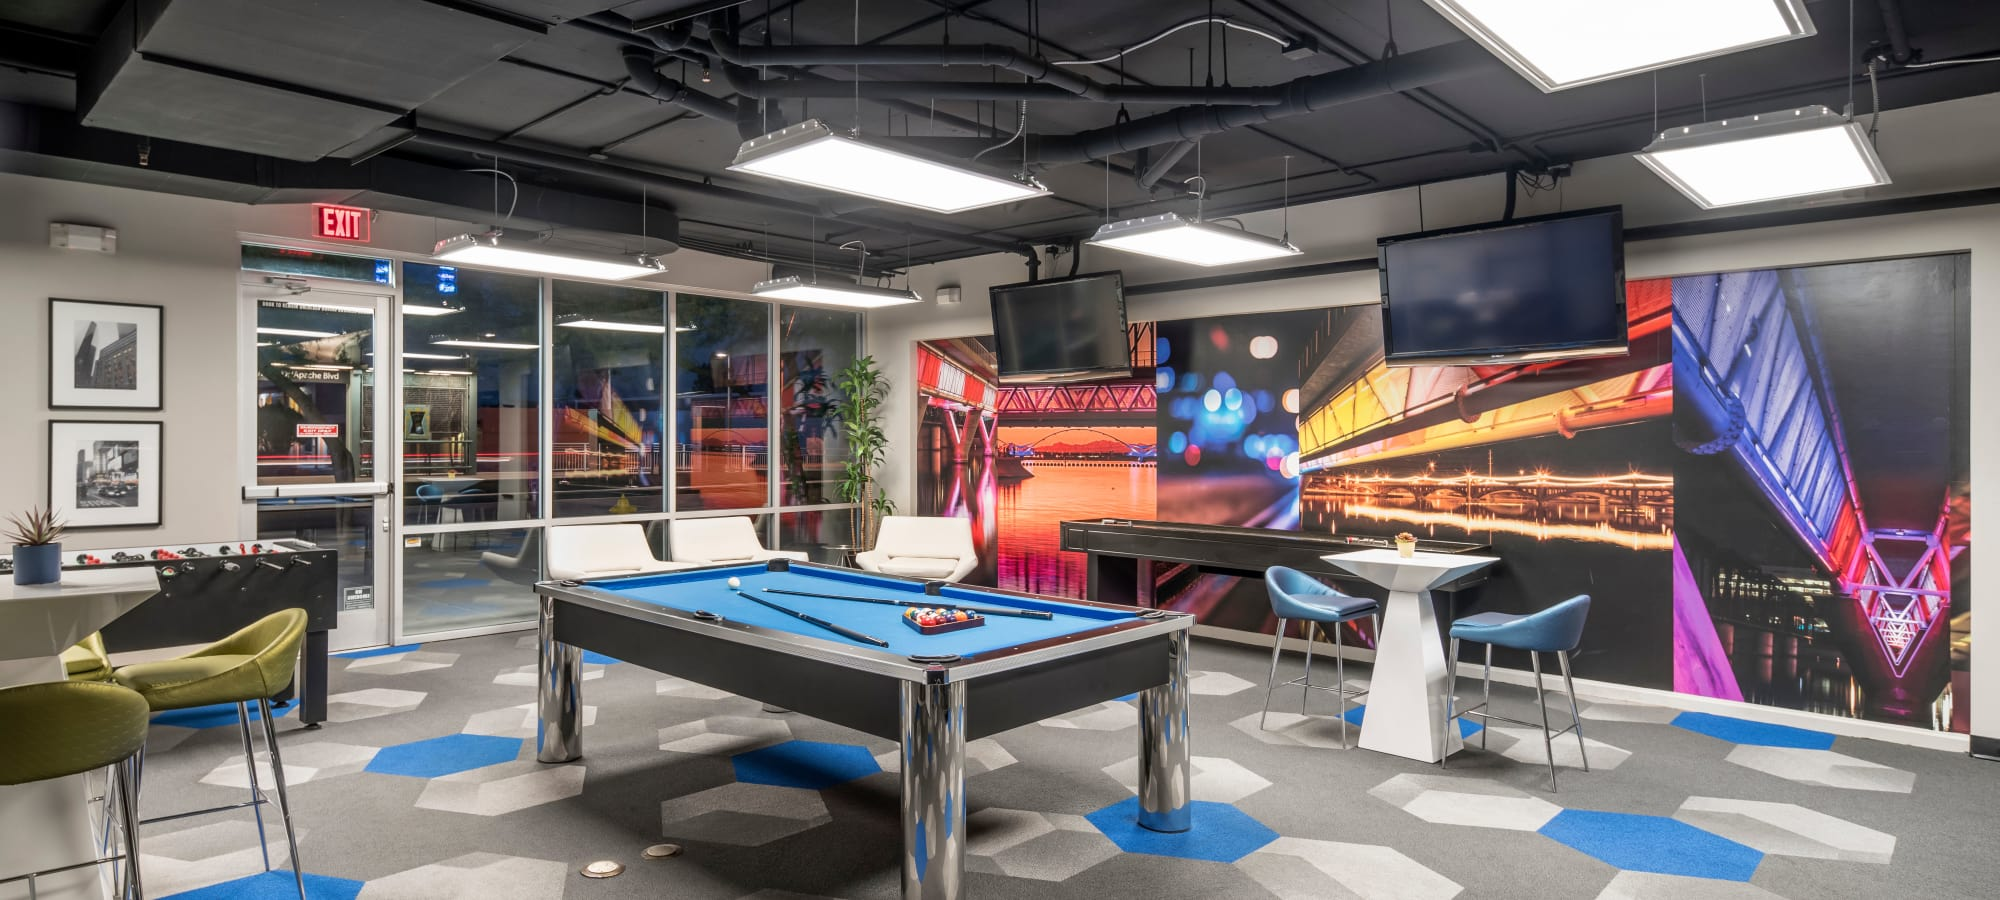 Community lounge with pool table at Tempe Metro in Tempe, Arizona